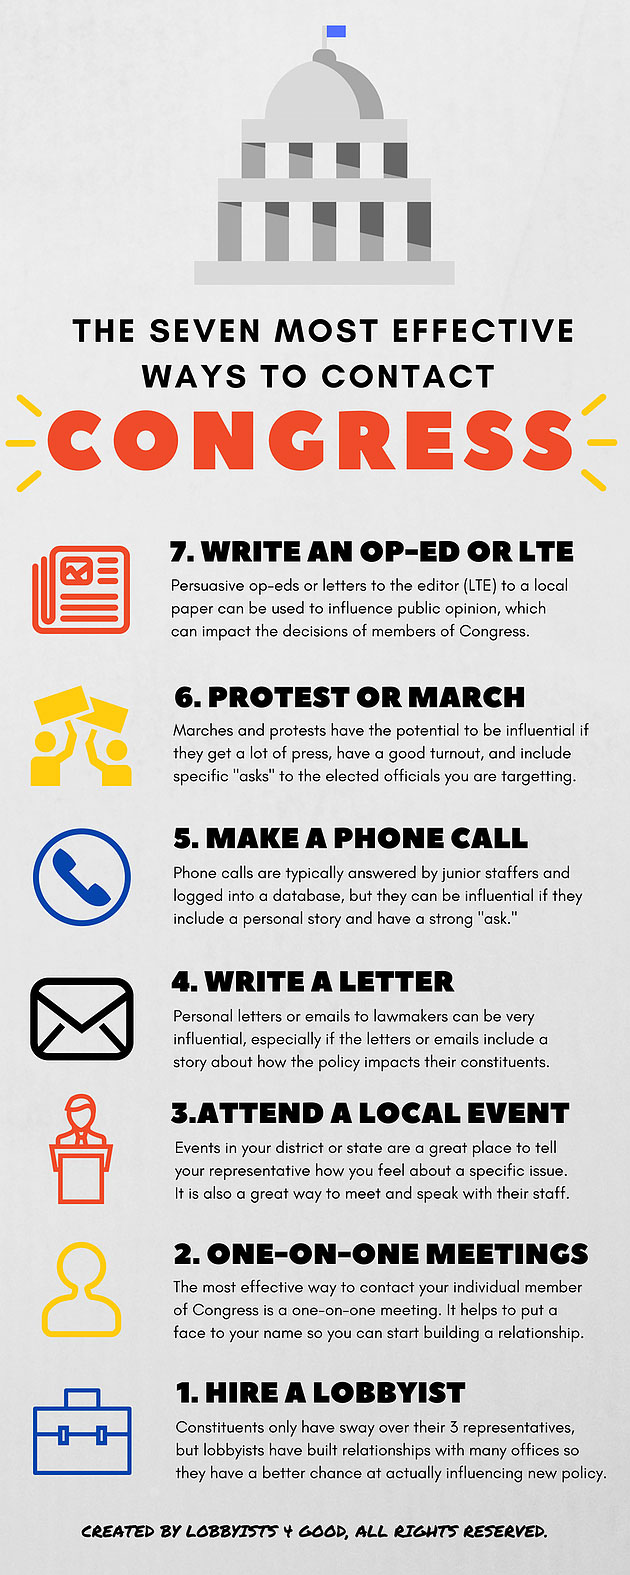 The Seven Most Effective Ways To Contact Congress